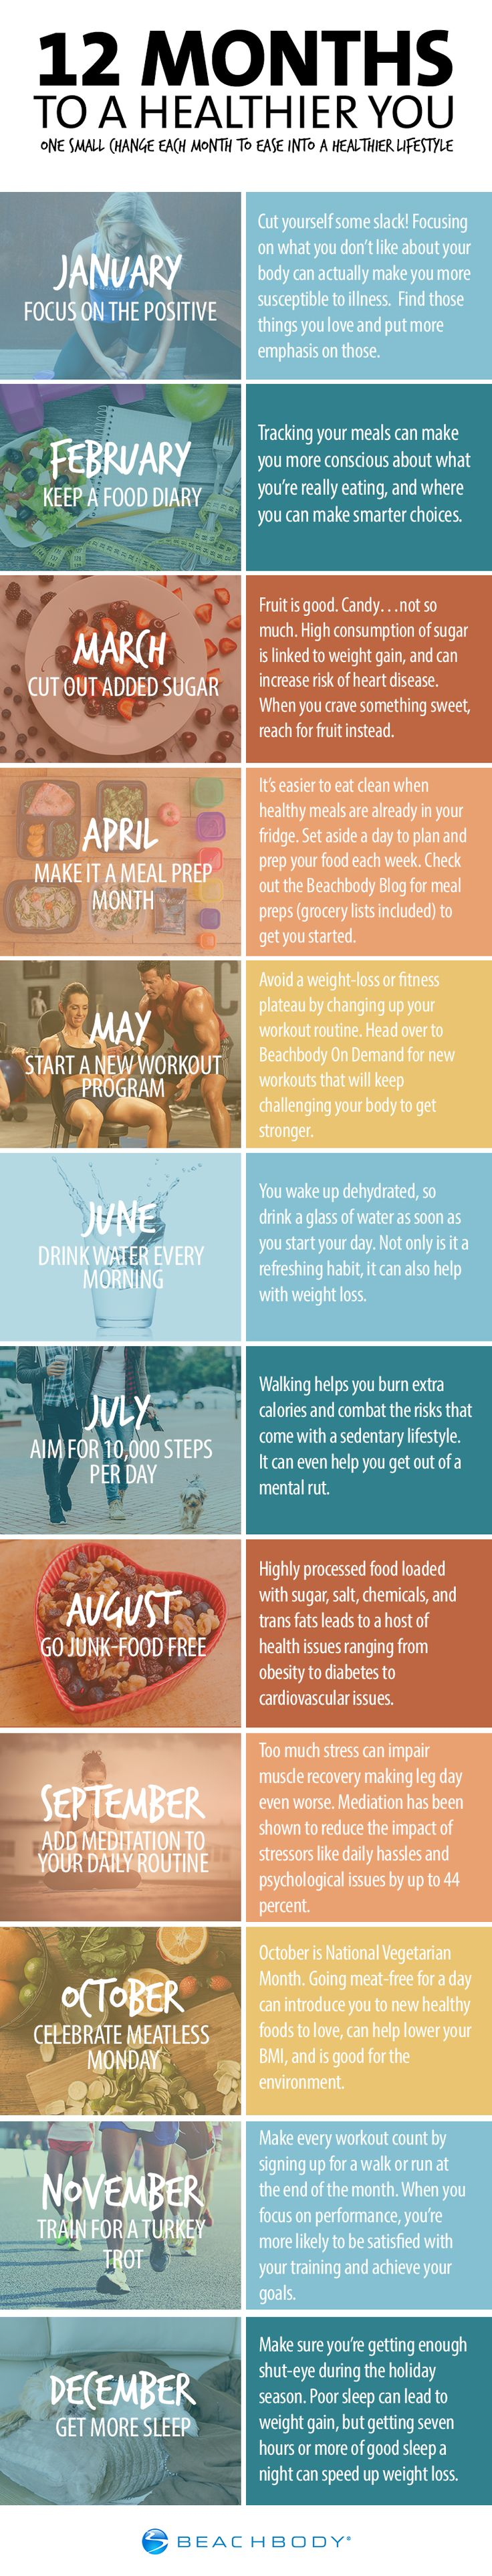 12 Months to a Healthier Life - The Team Beachbody Blog